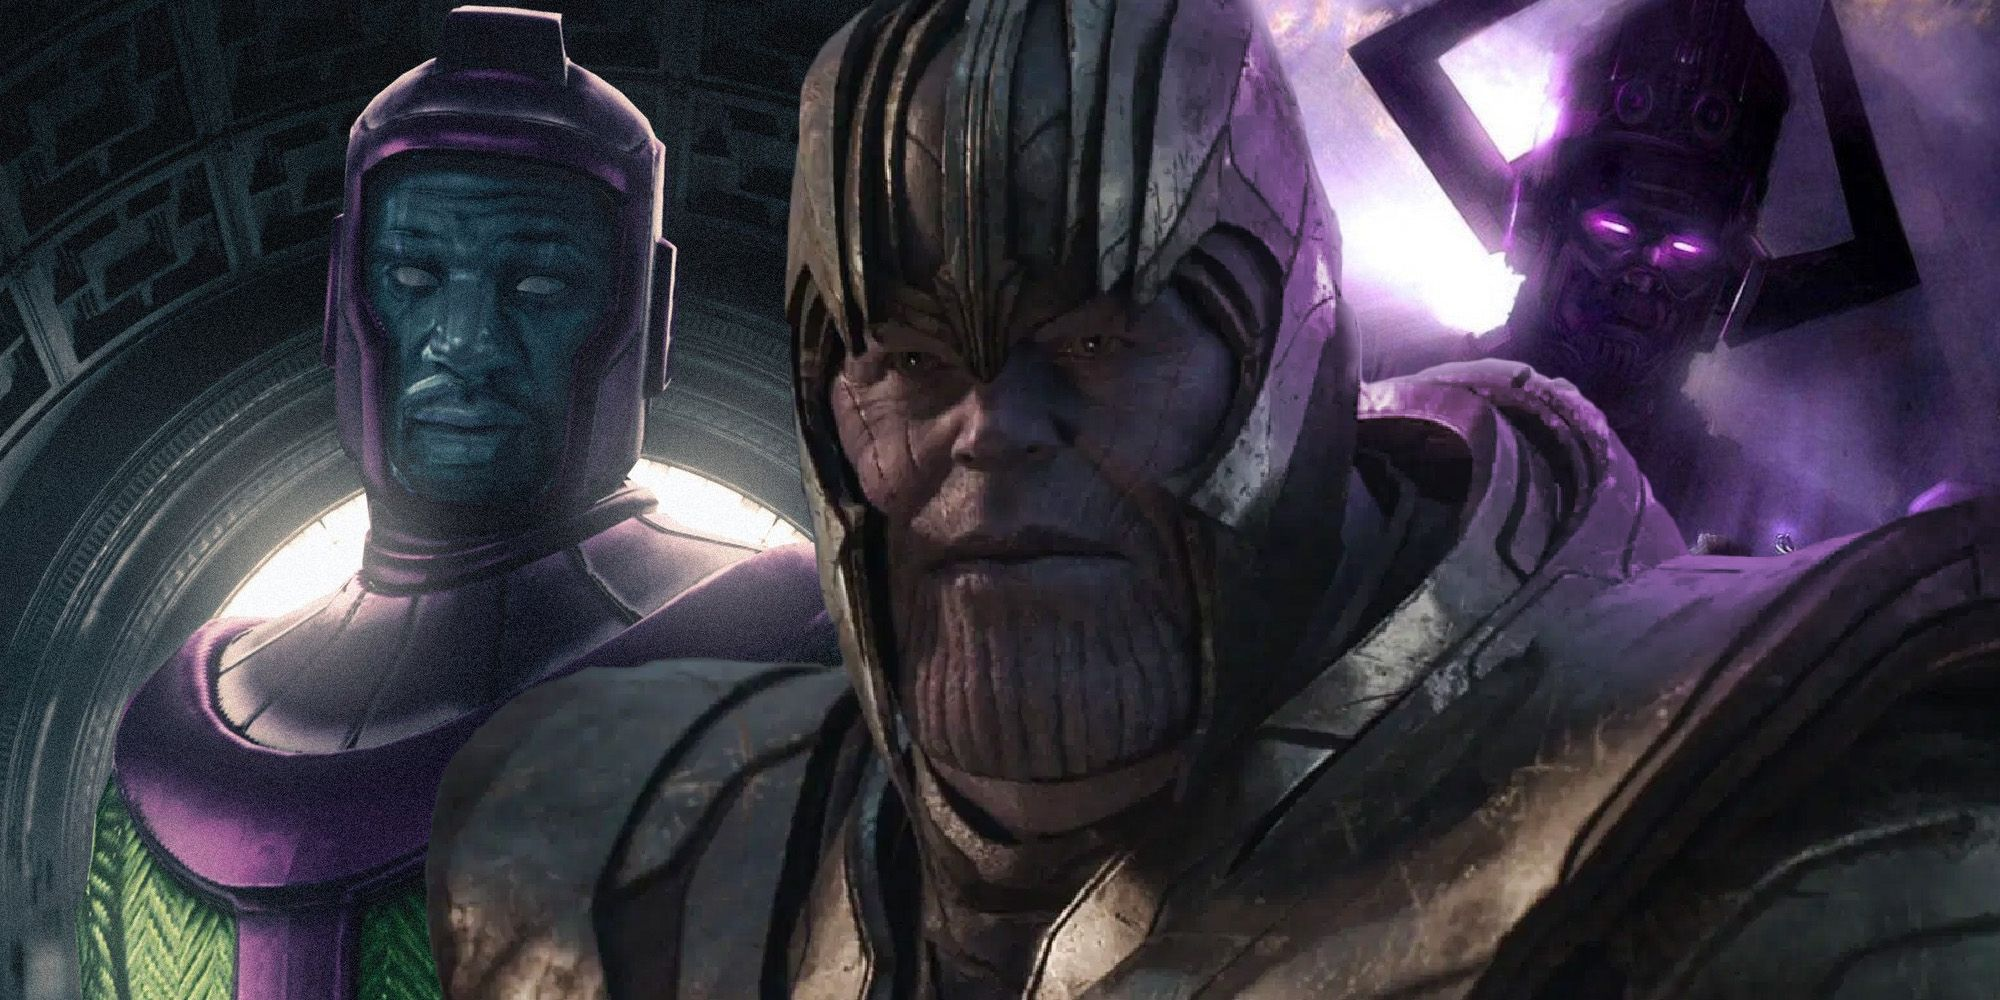 MCU Villains Who Could Be More Powerful Than Thanos In Phase 4 (& Beyond)